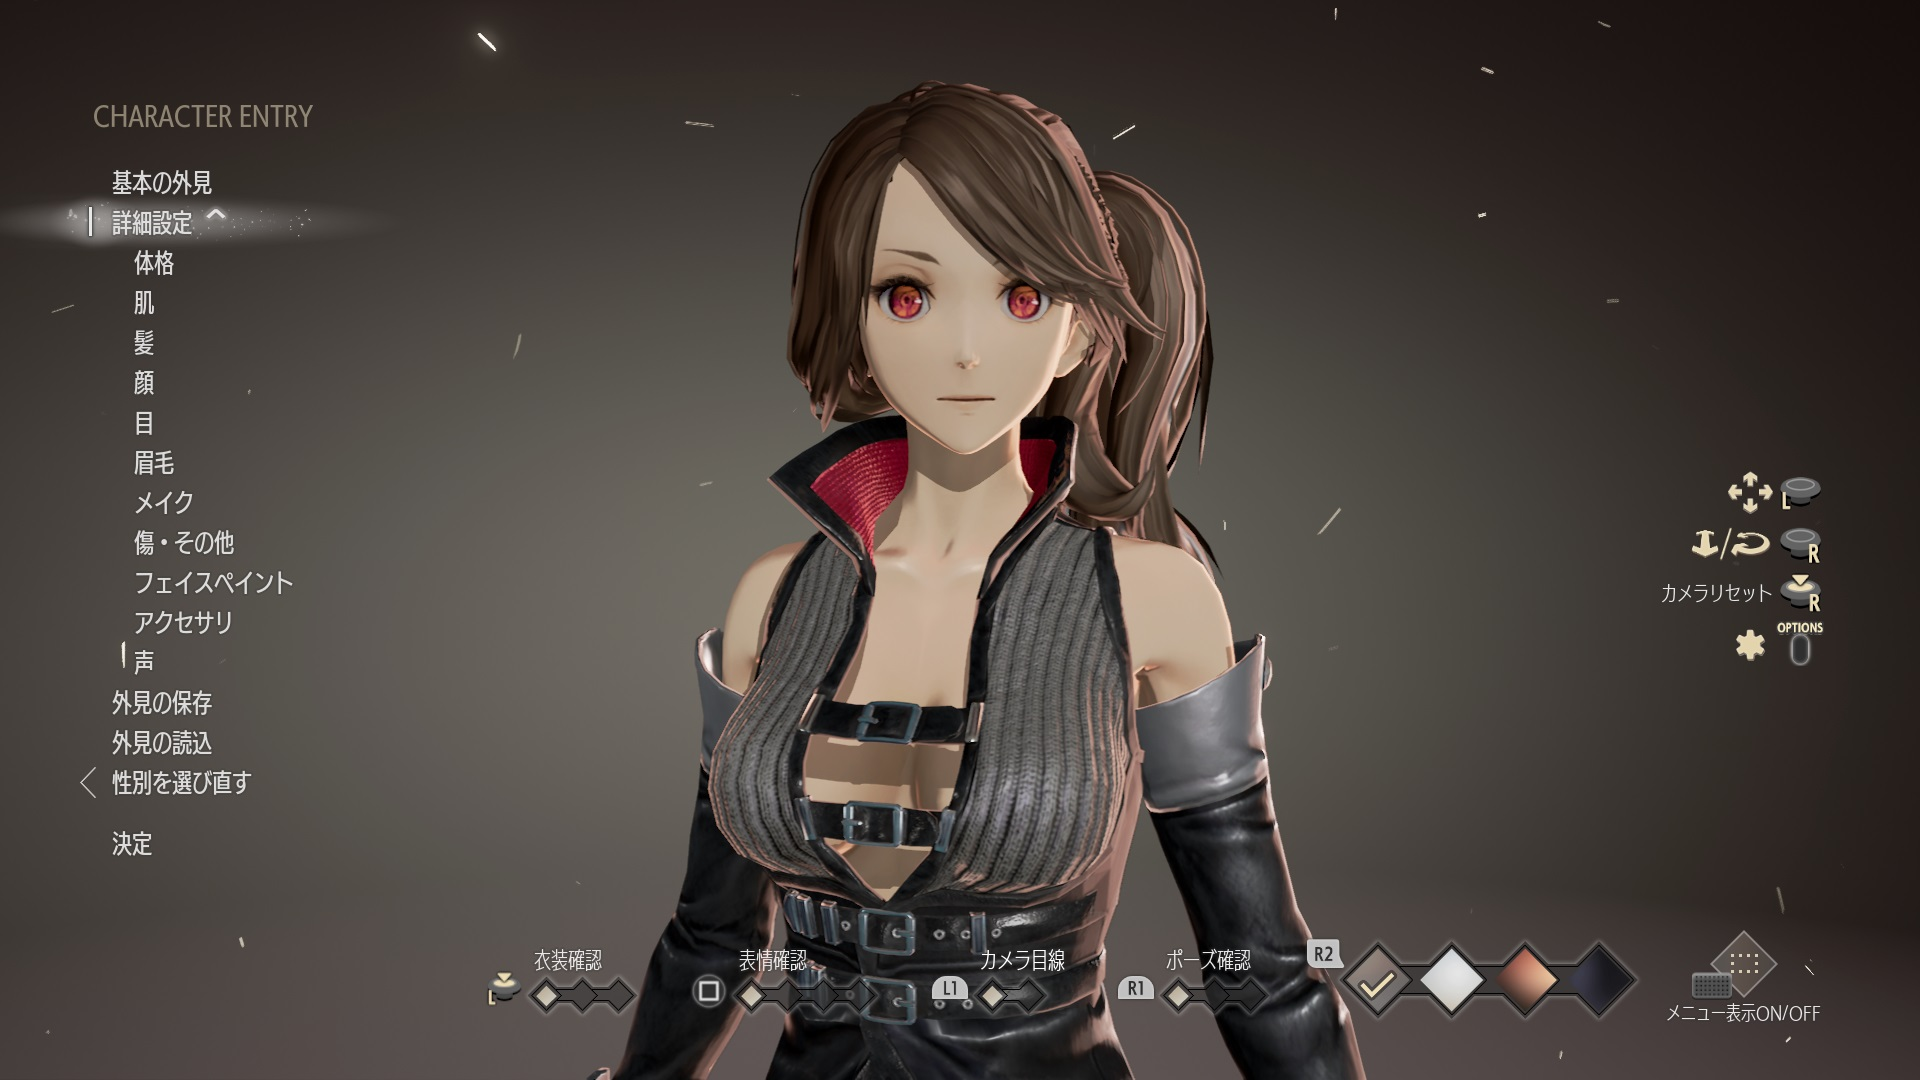 Anime Wallpaper For Ps Vita Code Vein Reveals Impressive Character Creation In New